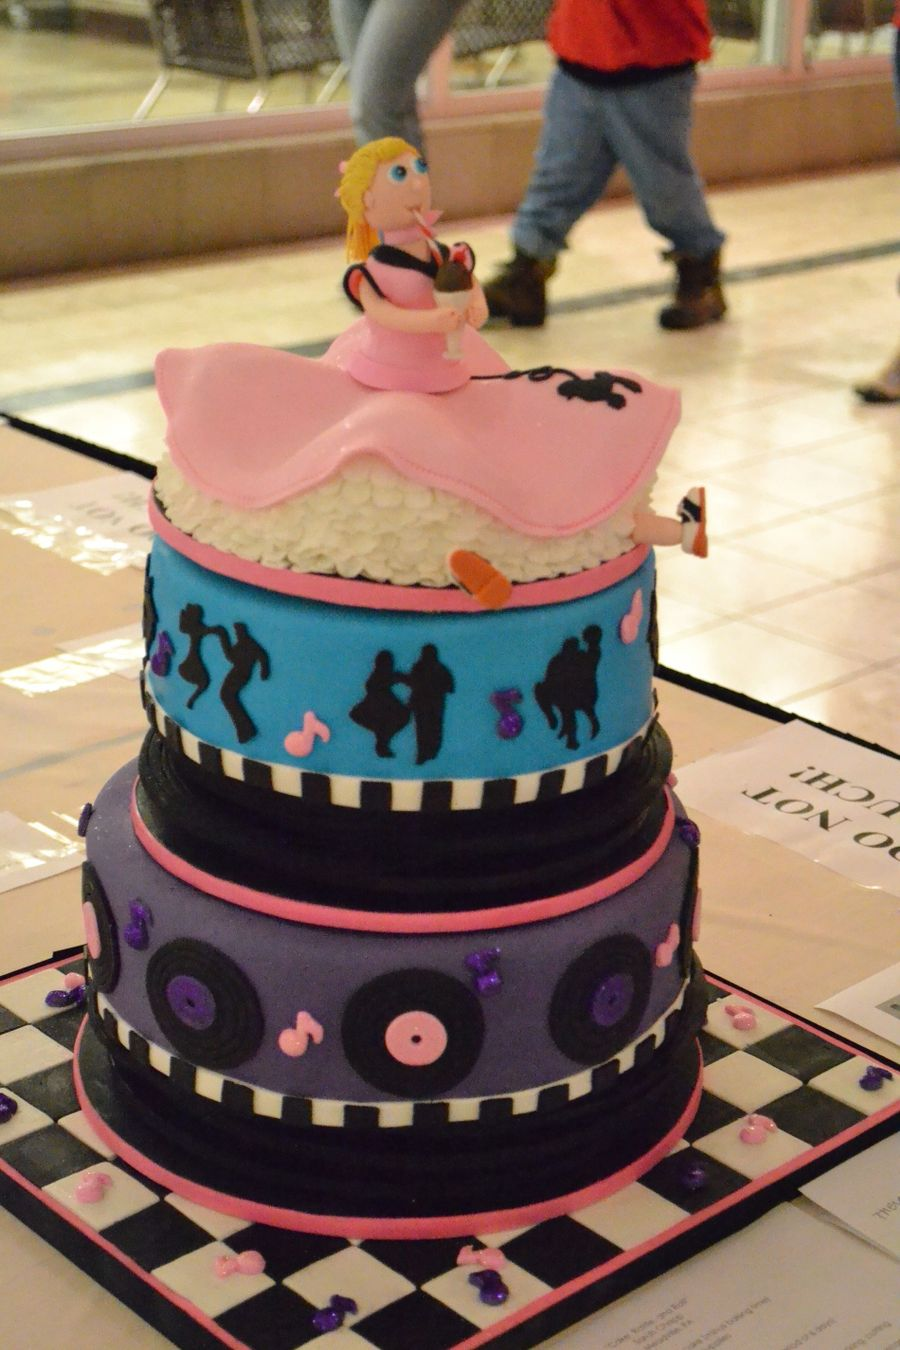 """""""cake, Rattle, And Roll""""- 1950's Music Cake - CakeCentral com"""